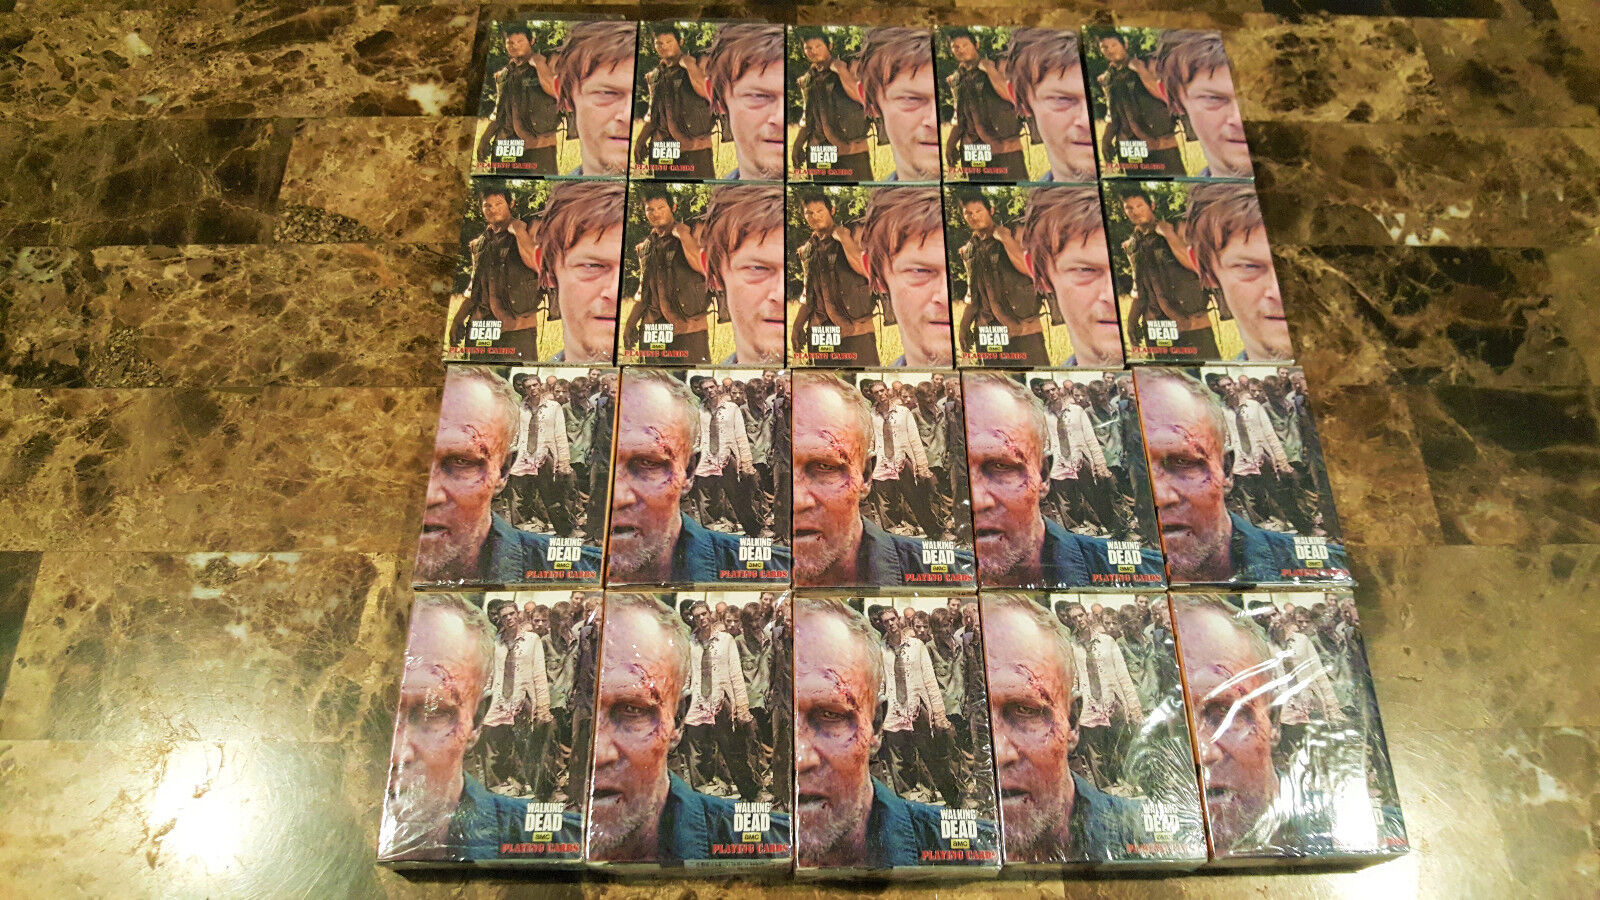 The walking dead, Daryl & Merle dixon 20 SETS of playing cards, brand new sealed